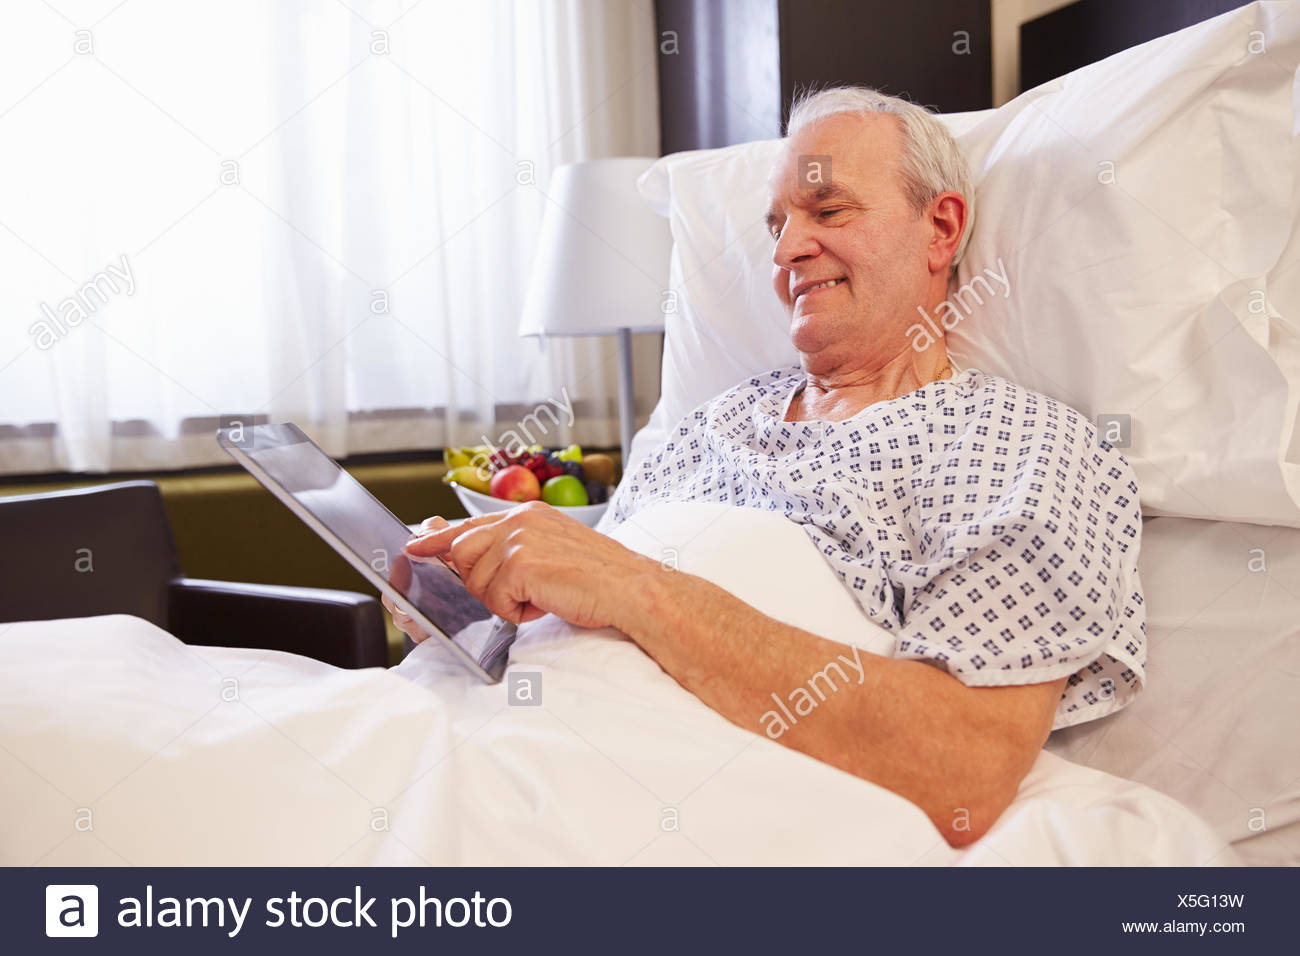 Senior Male Patient Using Digital Tablet In Hospital Bed - Stock Image